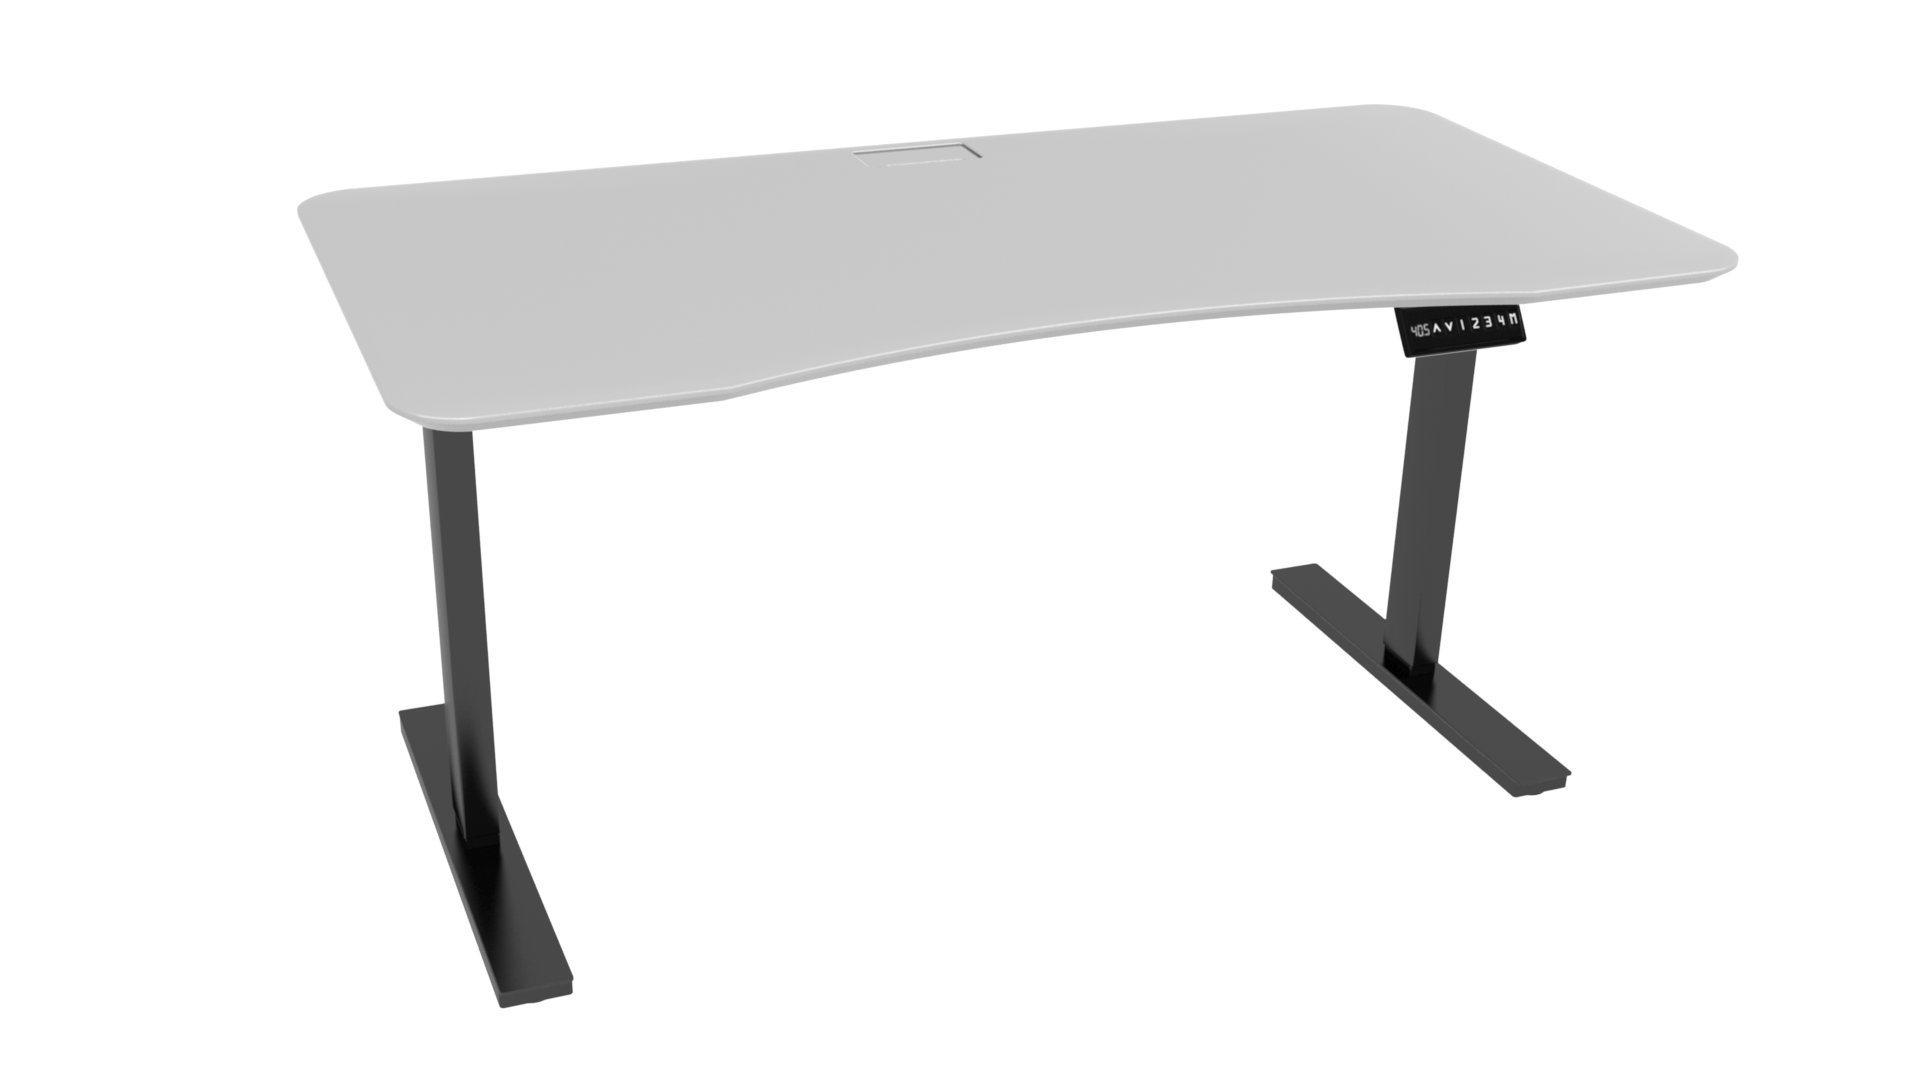 Ergo Elements 40M0100007W5 White Adjustable Height Standing Desk with Electric Push Button Black Base, 5' by 30'',